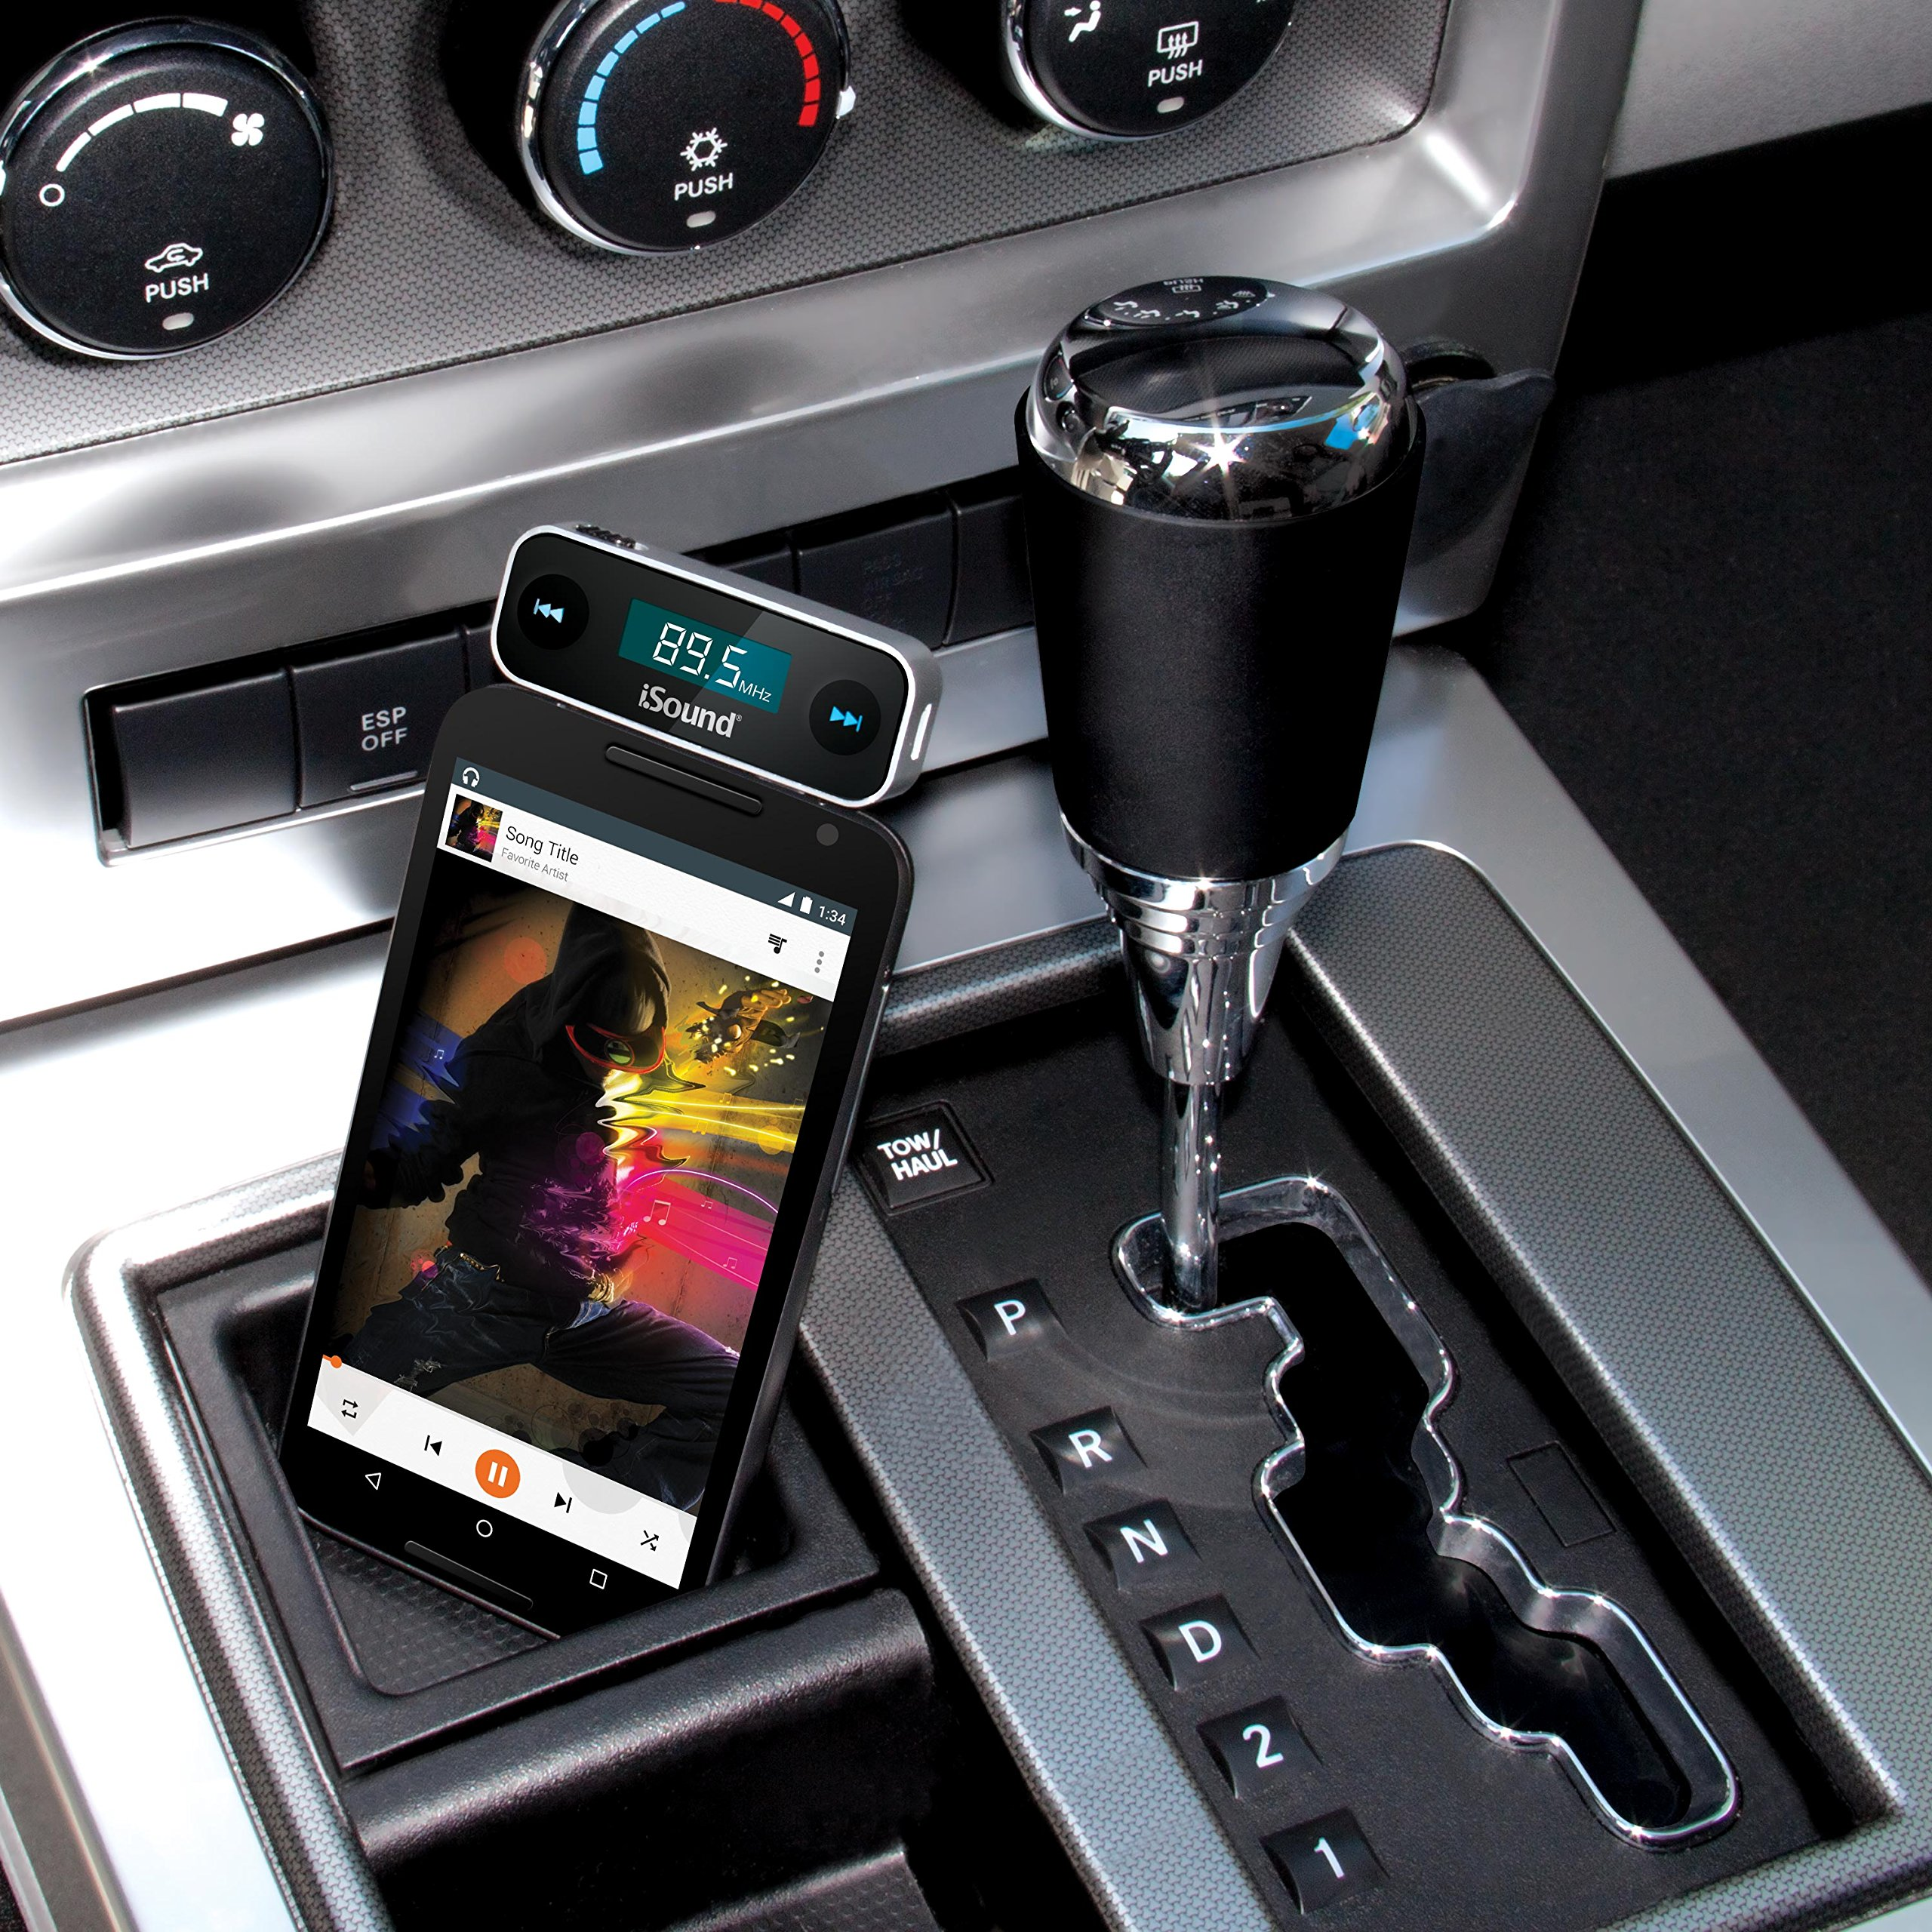 iSound Smart Tune 2 in 1 - Wireless FM Transmitter with Rechargeable Battery & included Car Charger by iSound (Image #1)